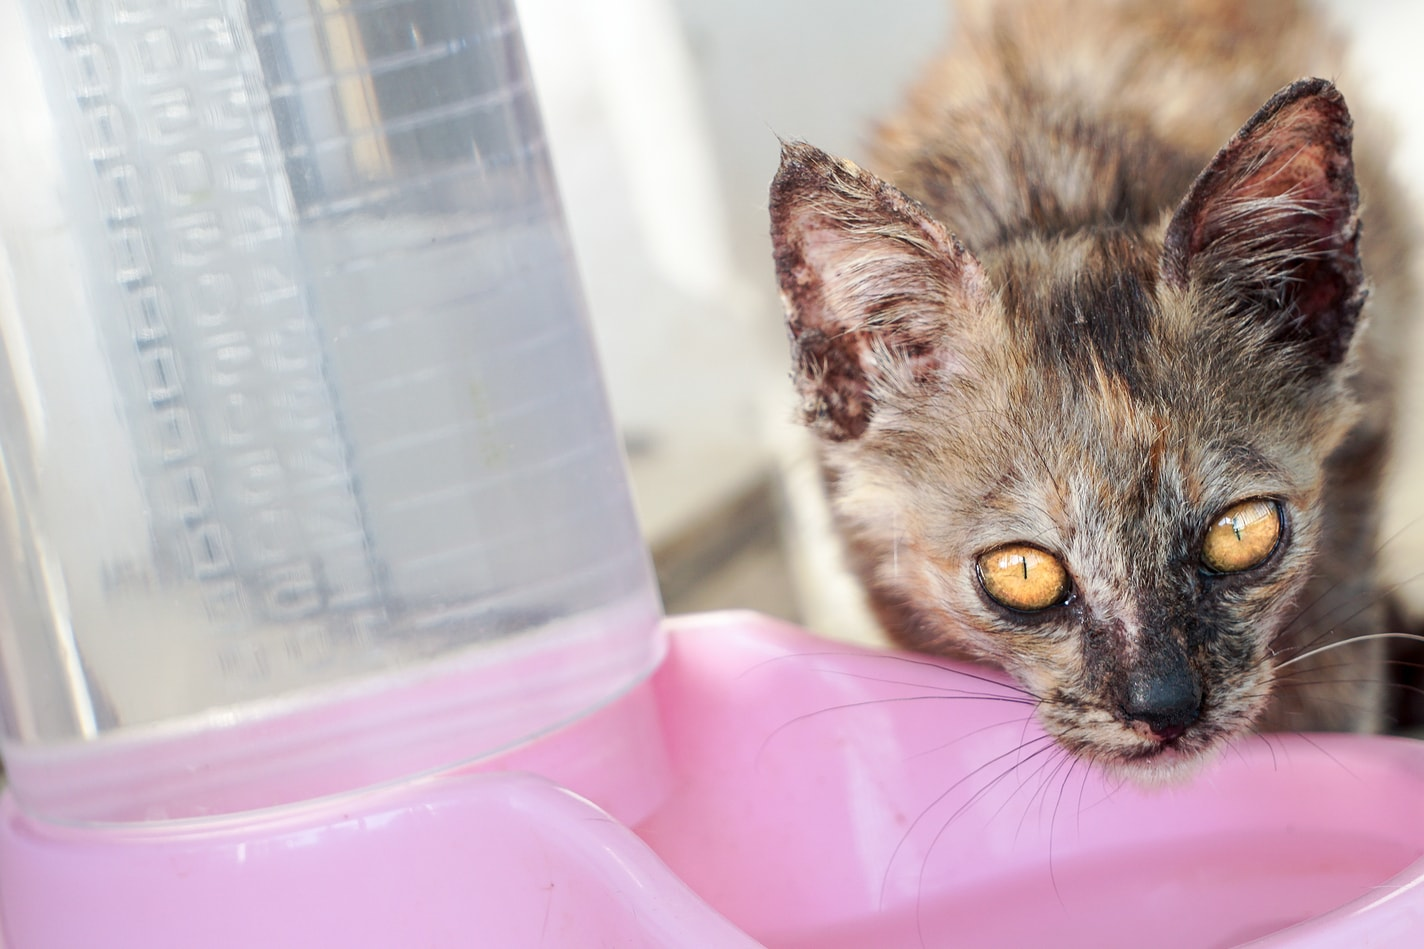 Spotted cat drinking from a pink water bowl